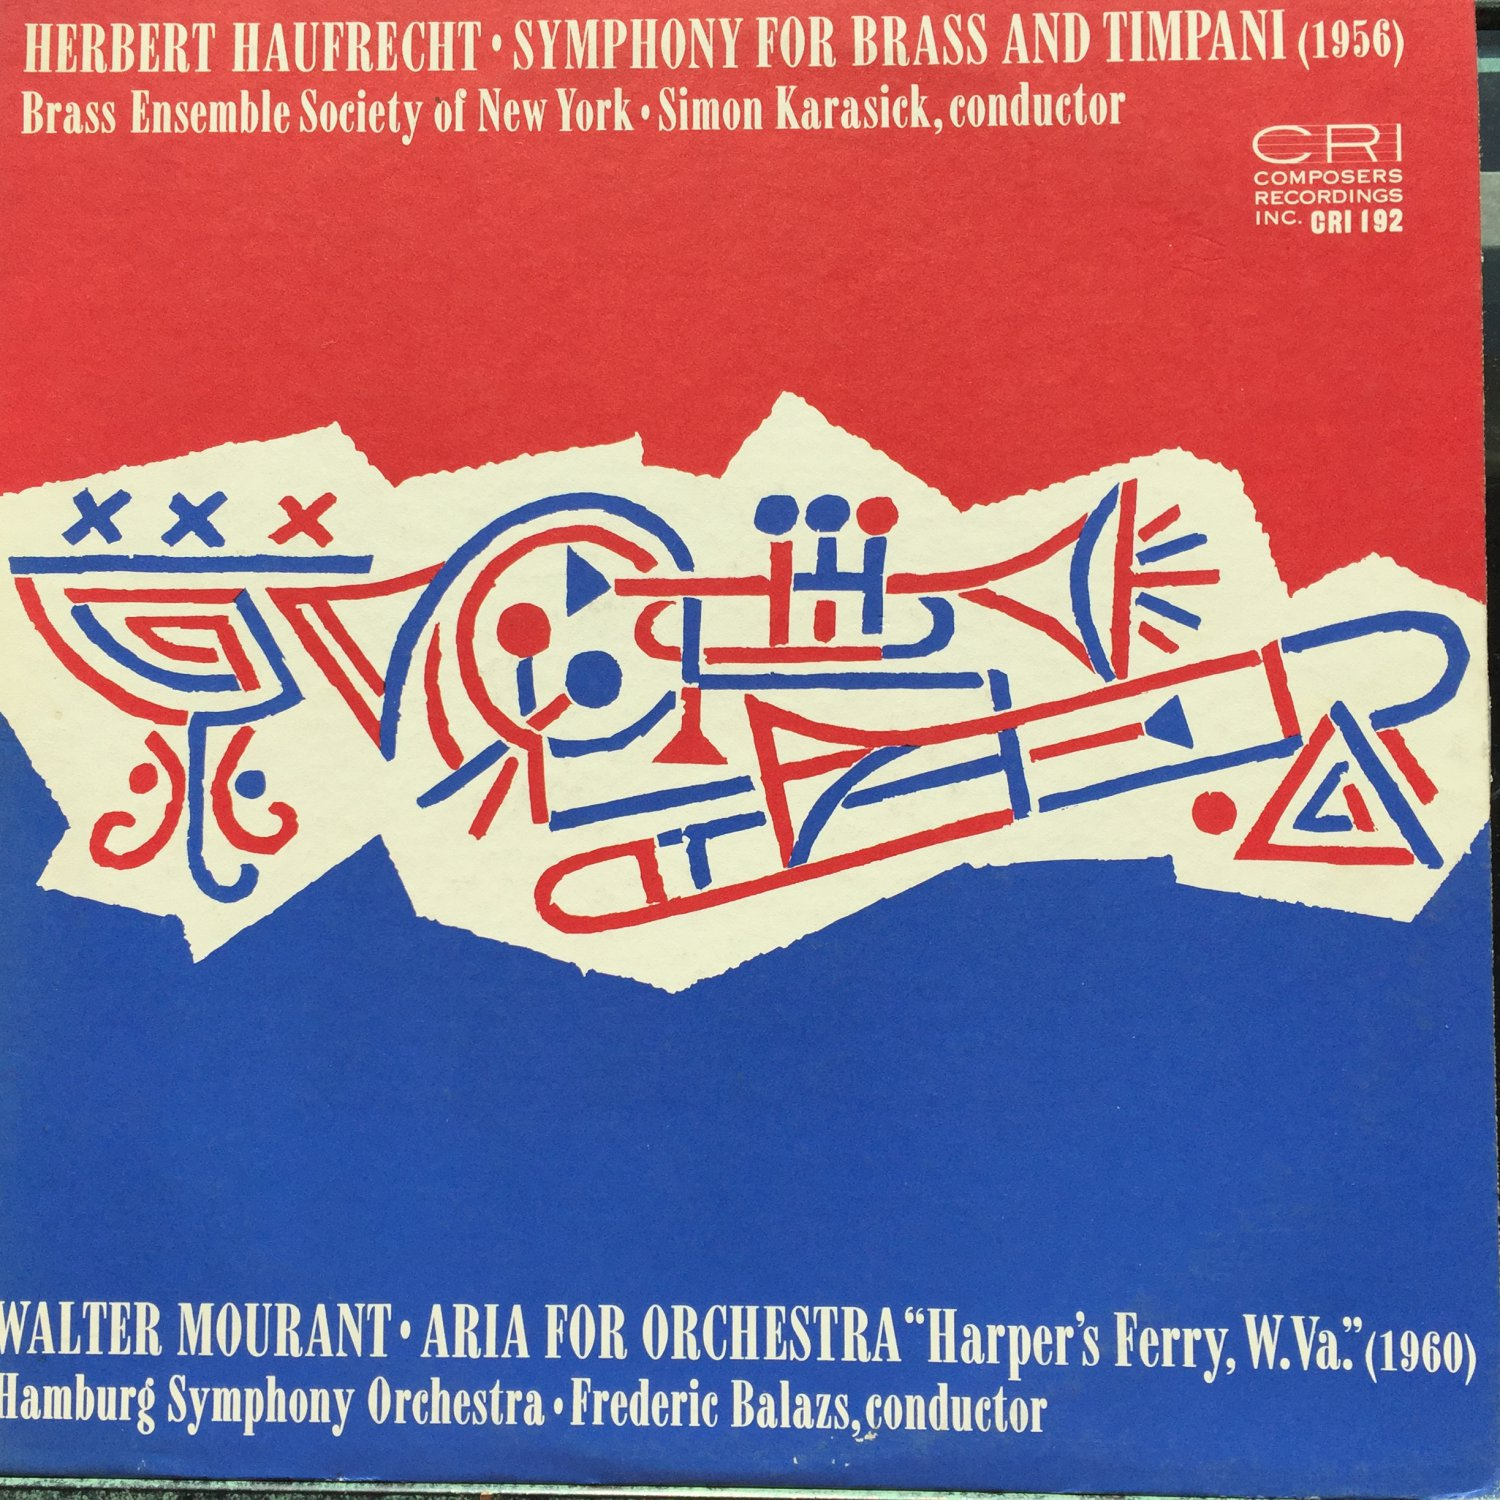 Herbert Haufrecht Walter Mourant Symphony For Brass And Timpani Aria Orchestra CRI 192